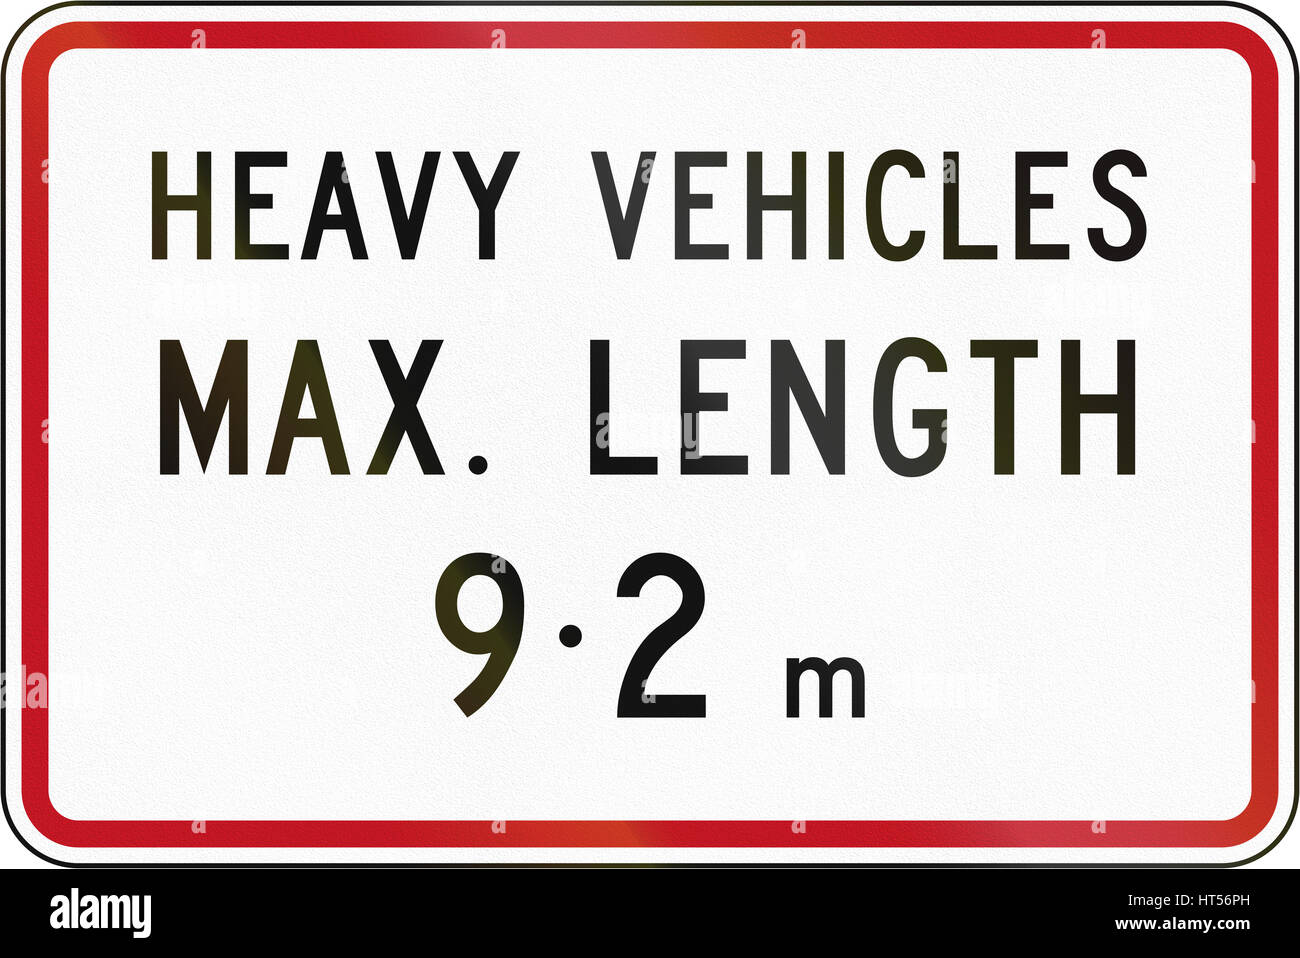 New Zealand road sign - Length limit for heady vehicles. - Stock Image